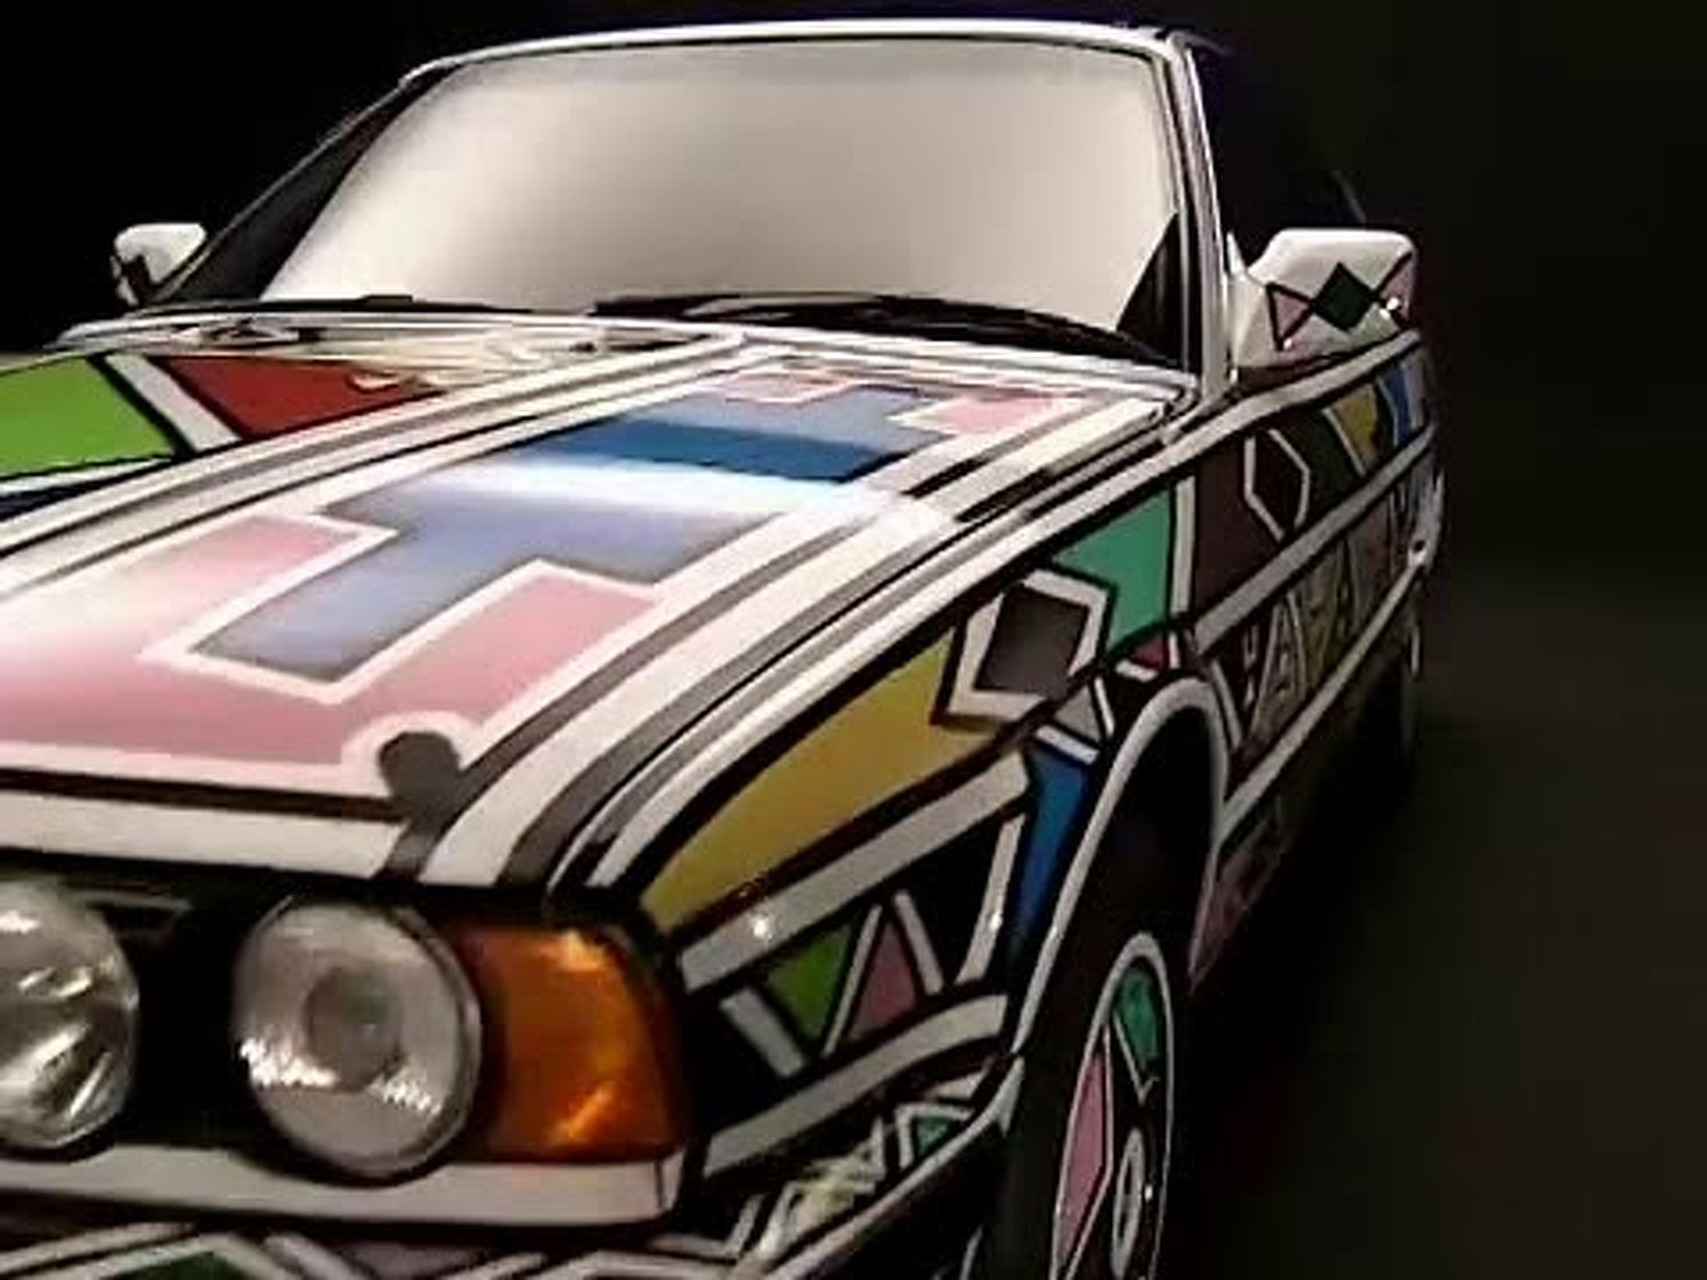 BMW 525i Art Car von Esther Mahlangu, 1991